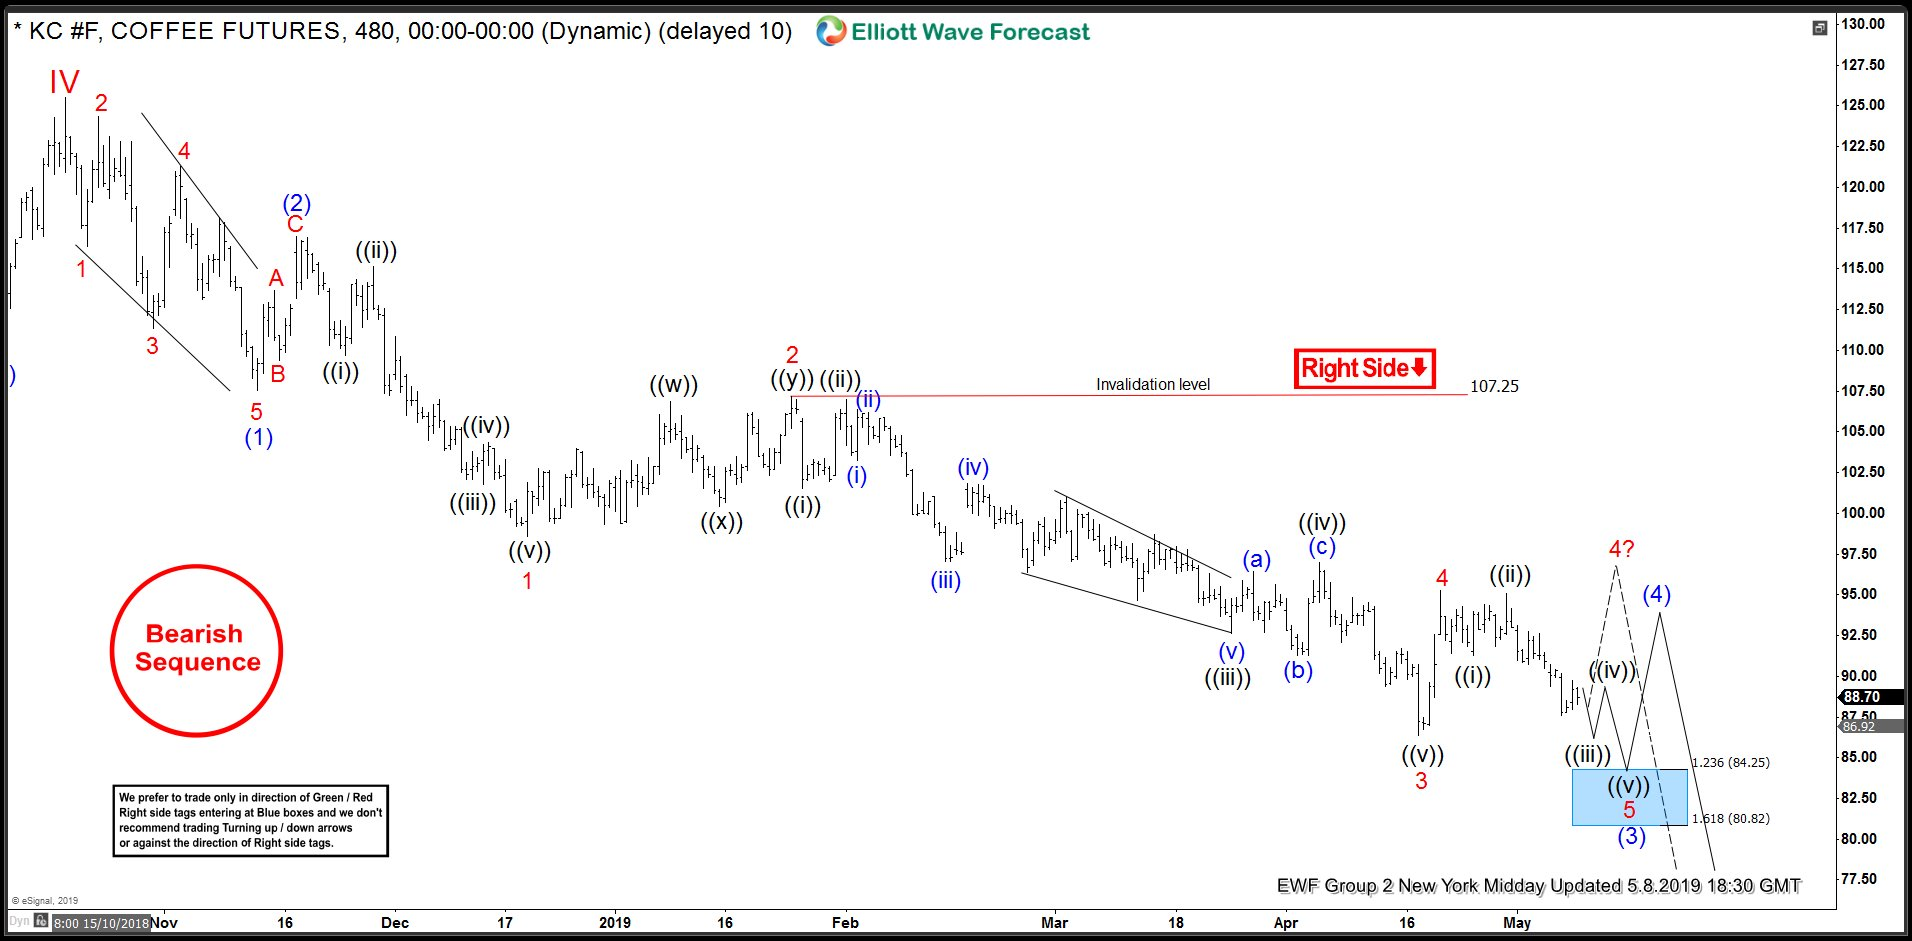 Coffee: Elliott Wave Impulse In Progress